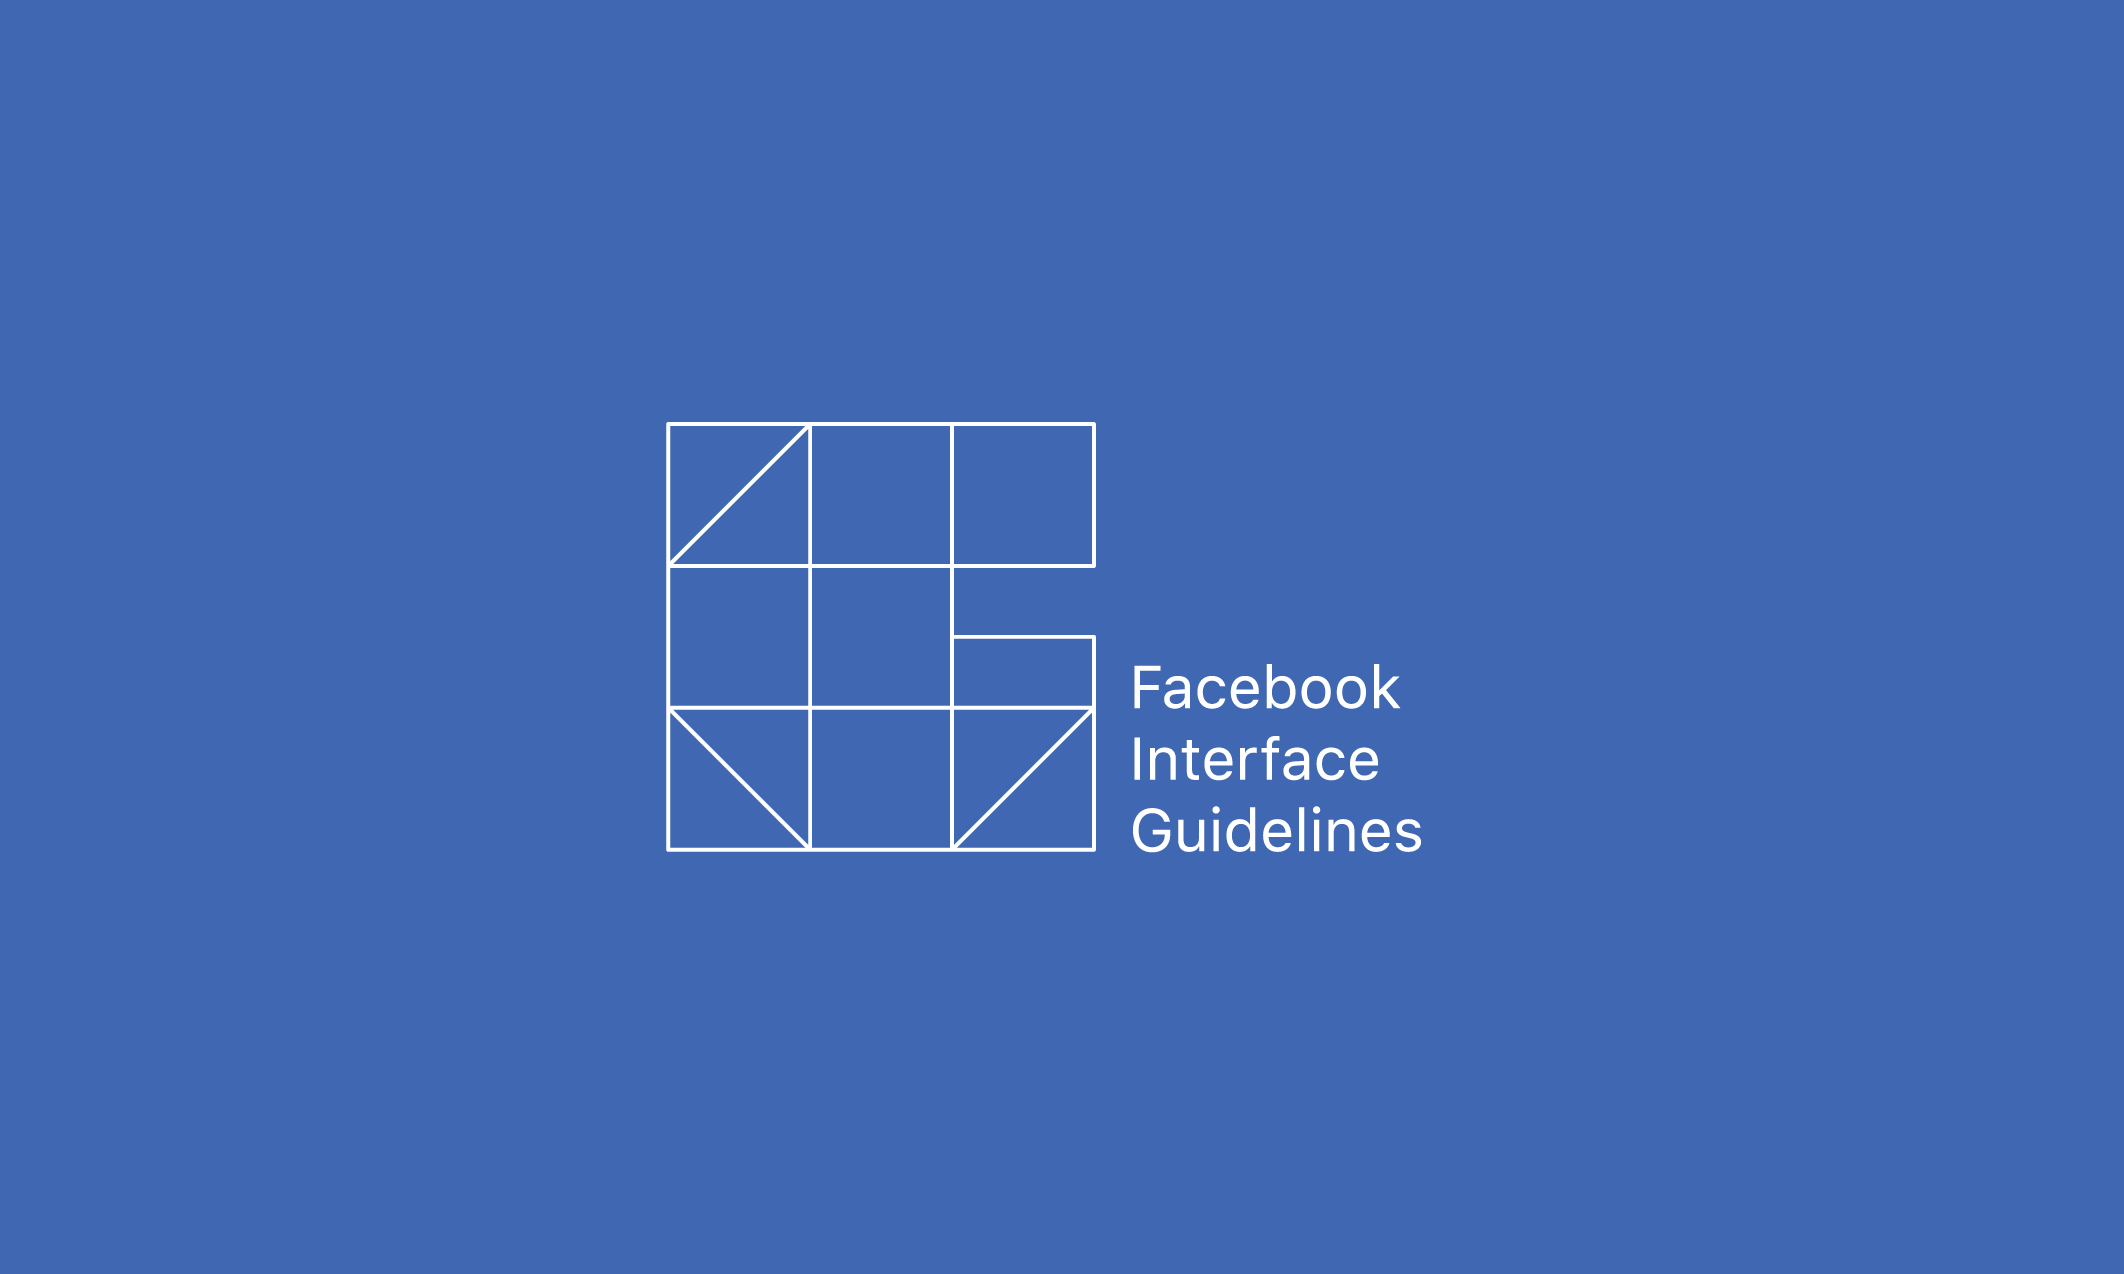 Facebook Interface Guidelines